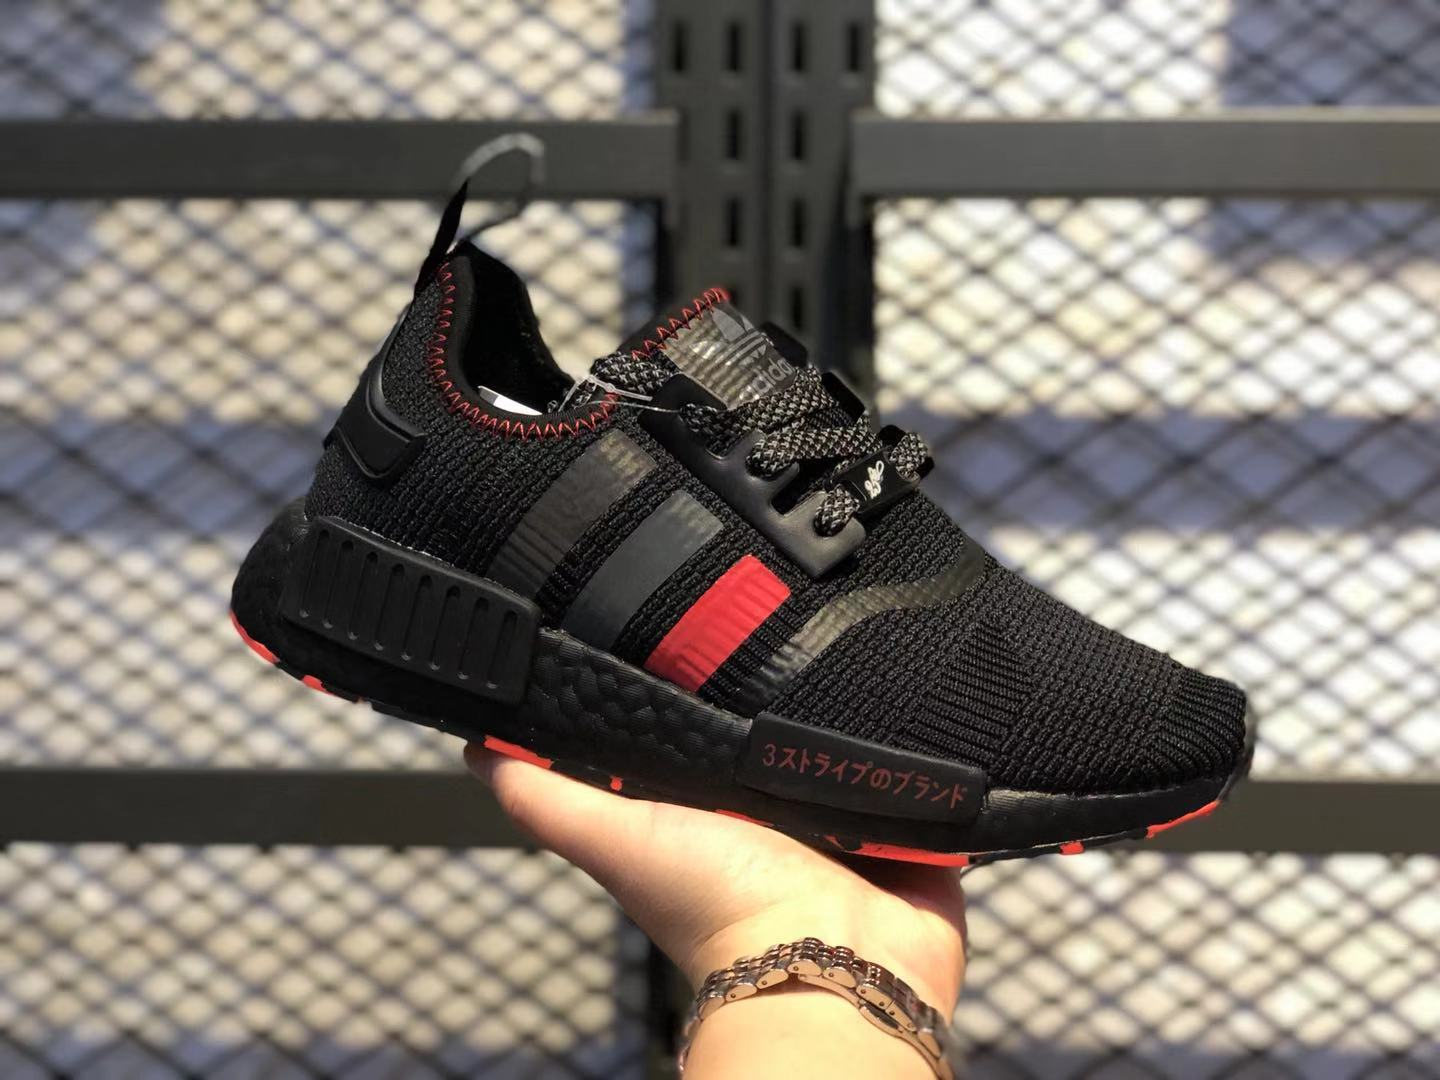 Shoe Palace x Adidas NMD R1 Black/Grey-Red Running Shoes On Sale G26514